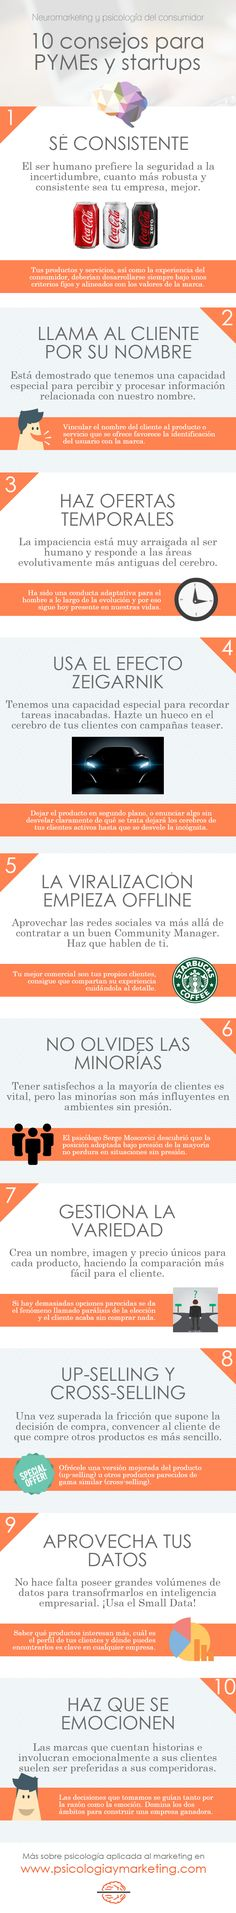 Neuromarketing: 10 consejos para pymes y startups #infografia #marketing